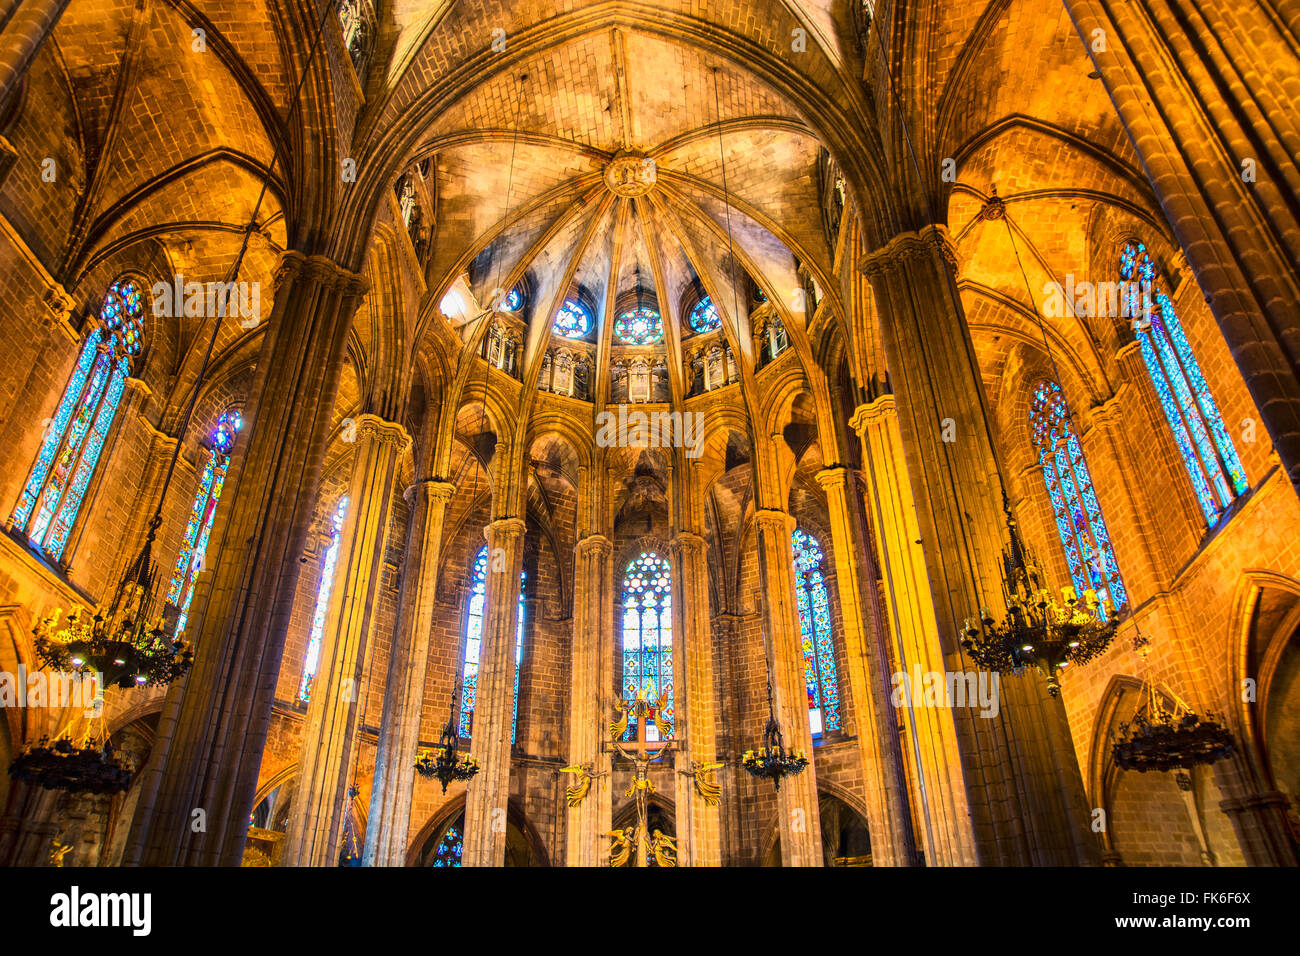 View from below on illuminated cathedral indoors. - Stock Image